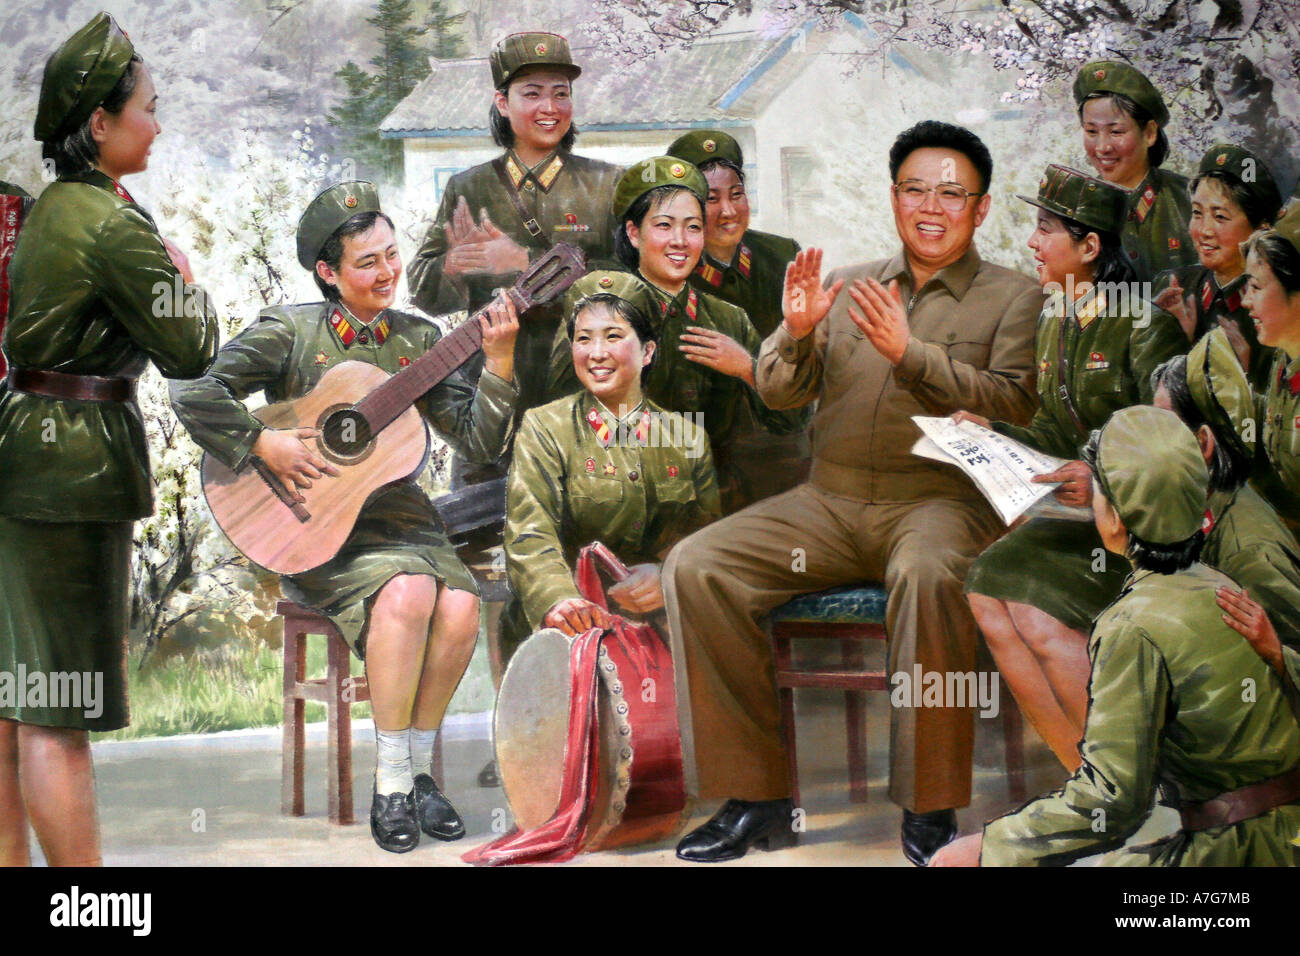 Painting in the Korean Art Museum showing Kim Il Sung and Kim Jong Il with their armed forces. - Stock Image